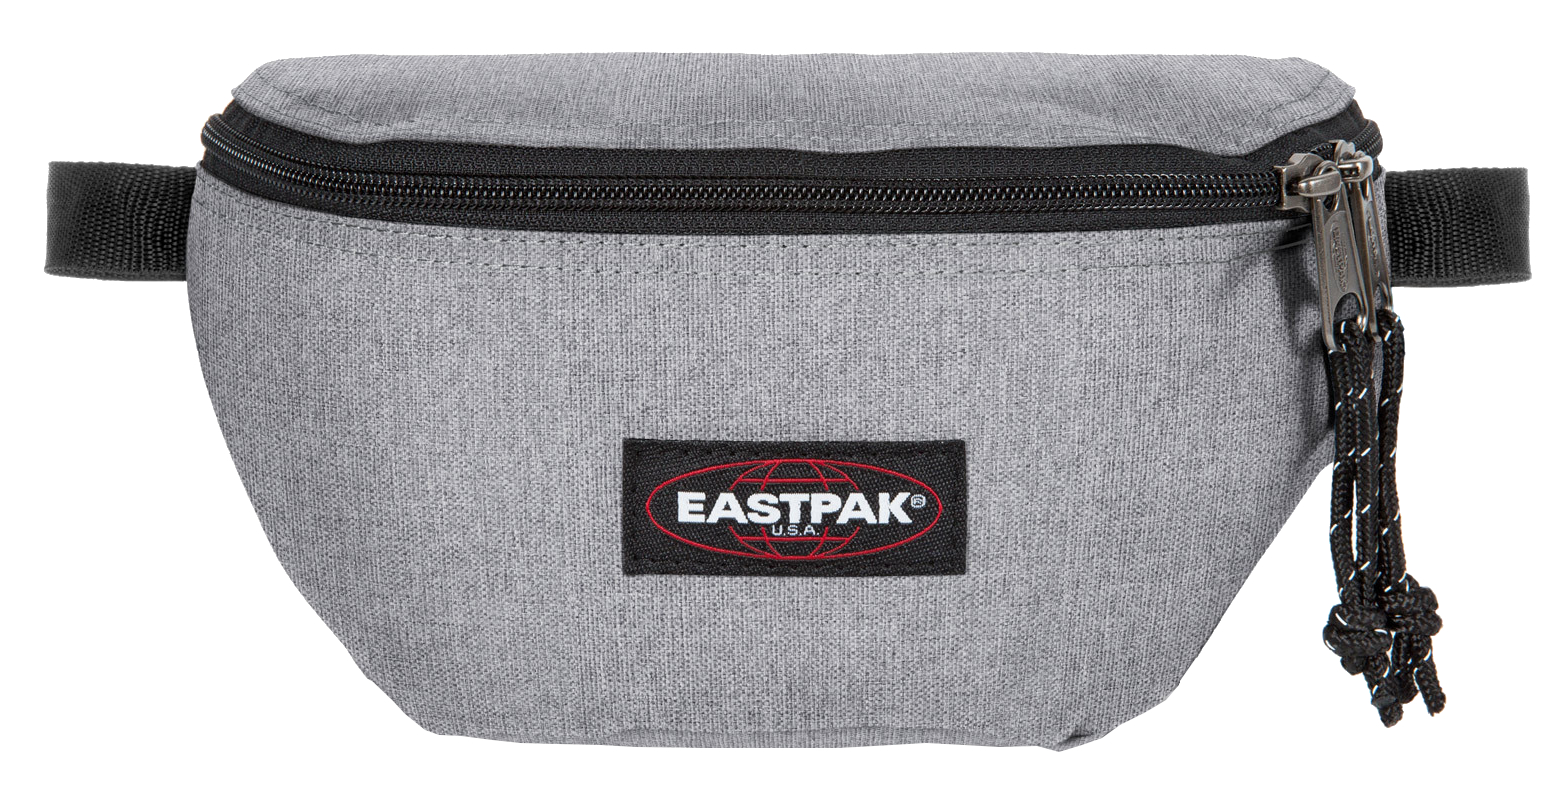 Eastpak 'Springer' Gürteltasche 2L sunday grey